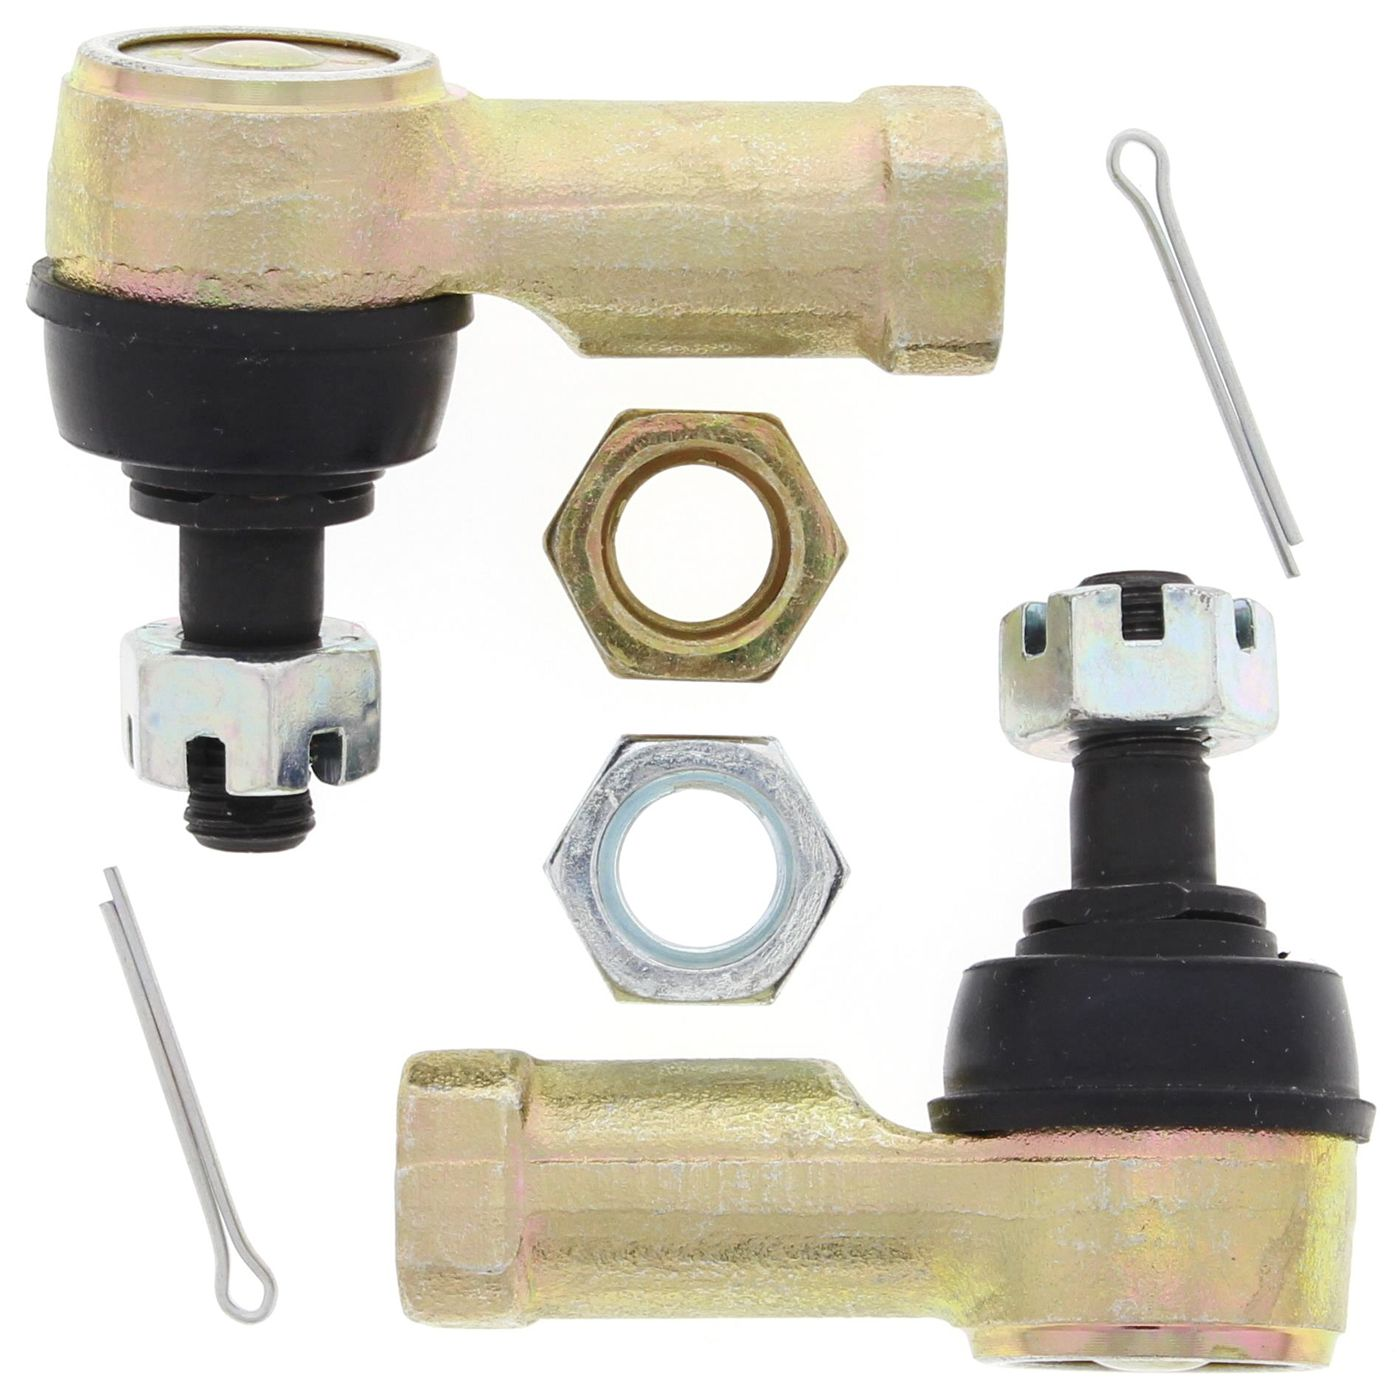 Wrp Tie Rod Ends - WRP511024 image